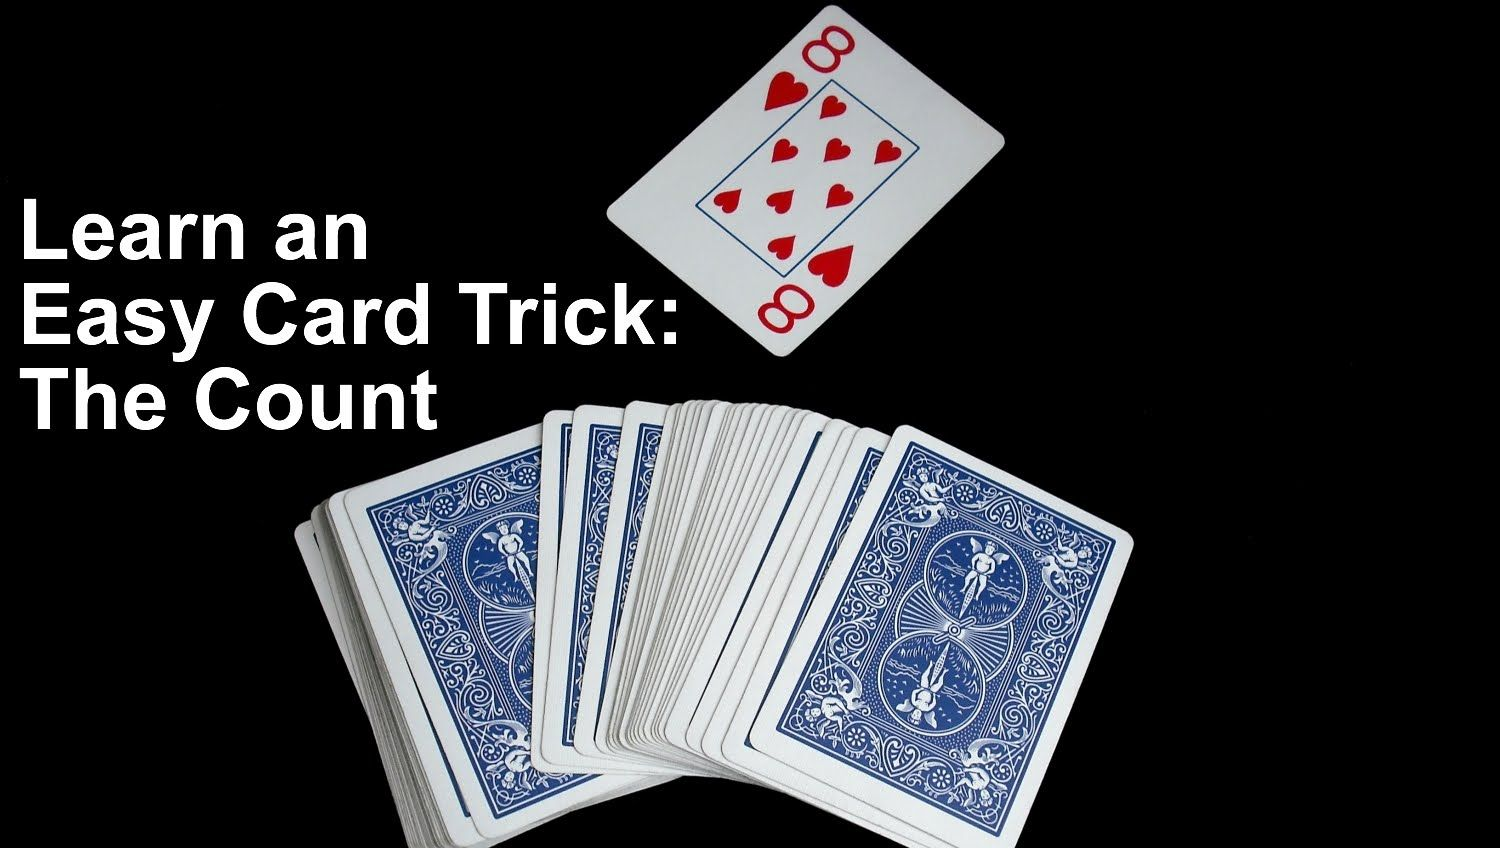 Here S An Excellent Self Working Card Trick And Before You Learn It Watch Me Perform It For Some College Students T Card Tricks Simple Cards Easy Card Tricks